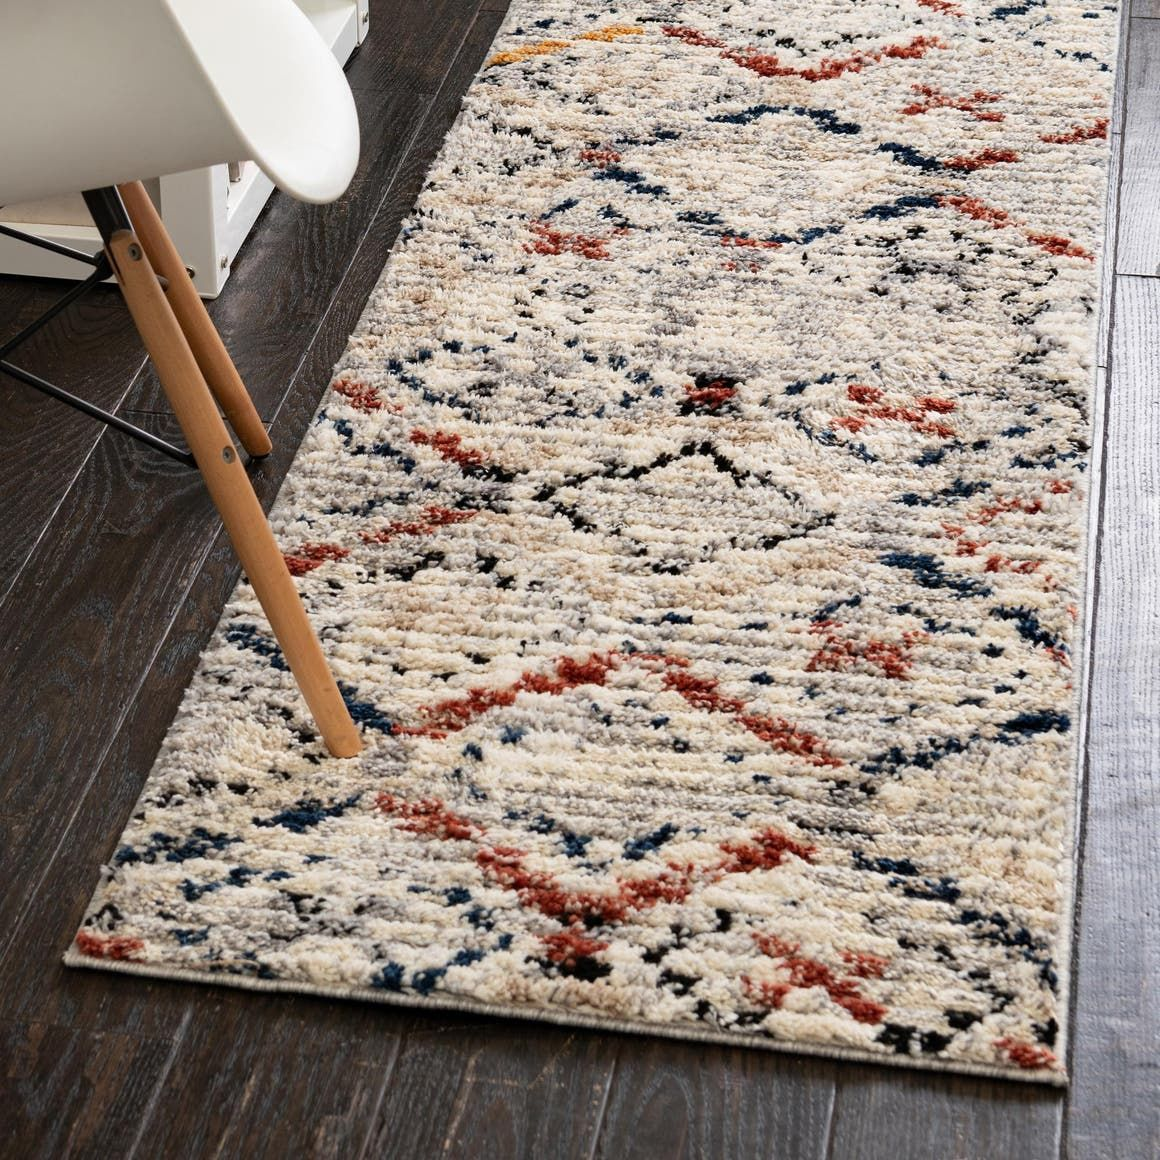 Multicolor 2 X 6 Tucson Runner Rug Rugs Com In 2020 Rugs Rug Runner Area Rugs